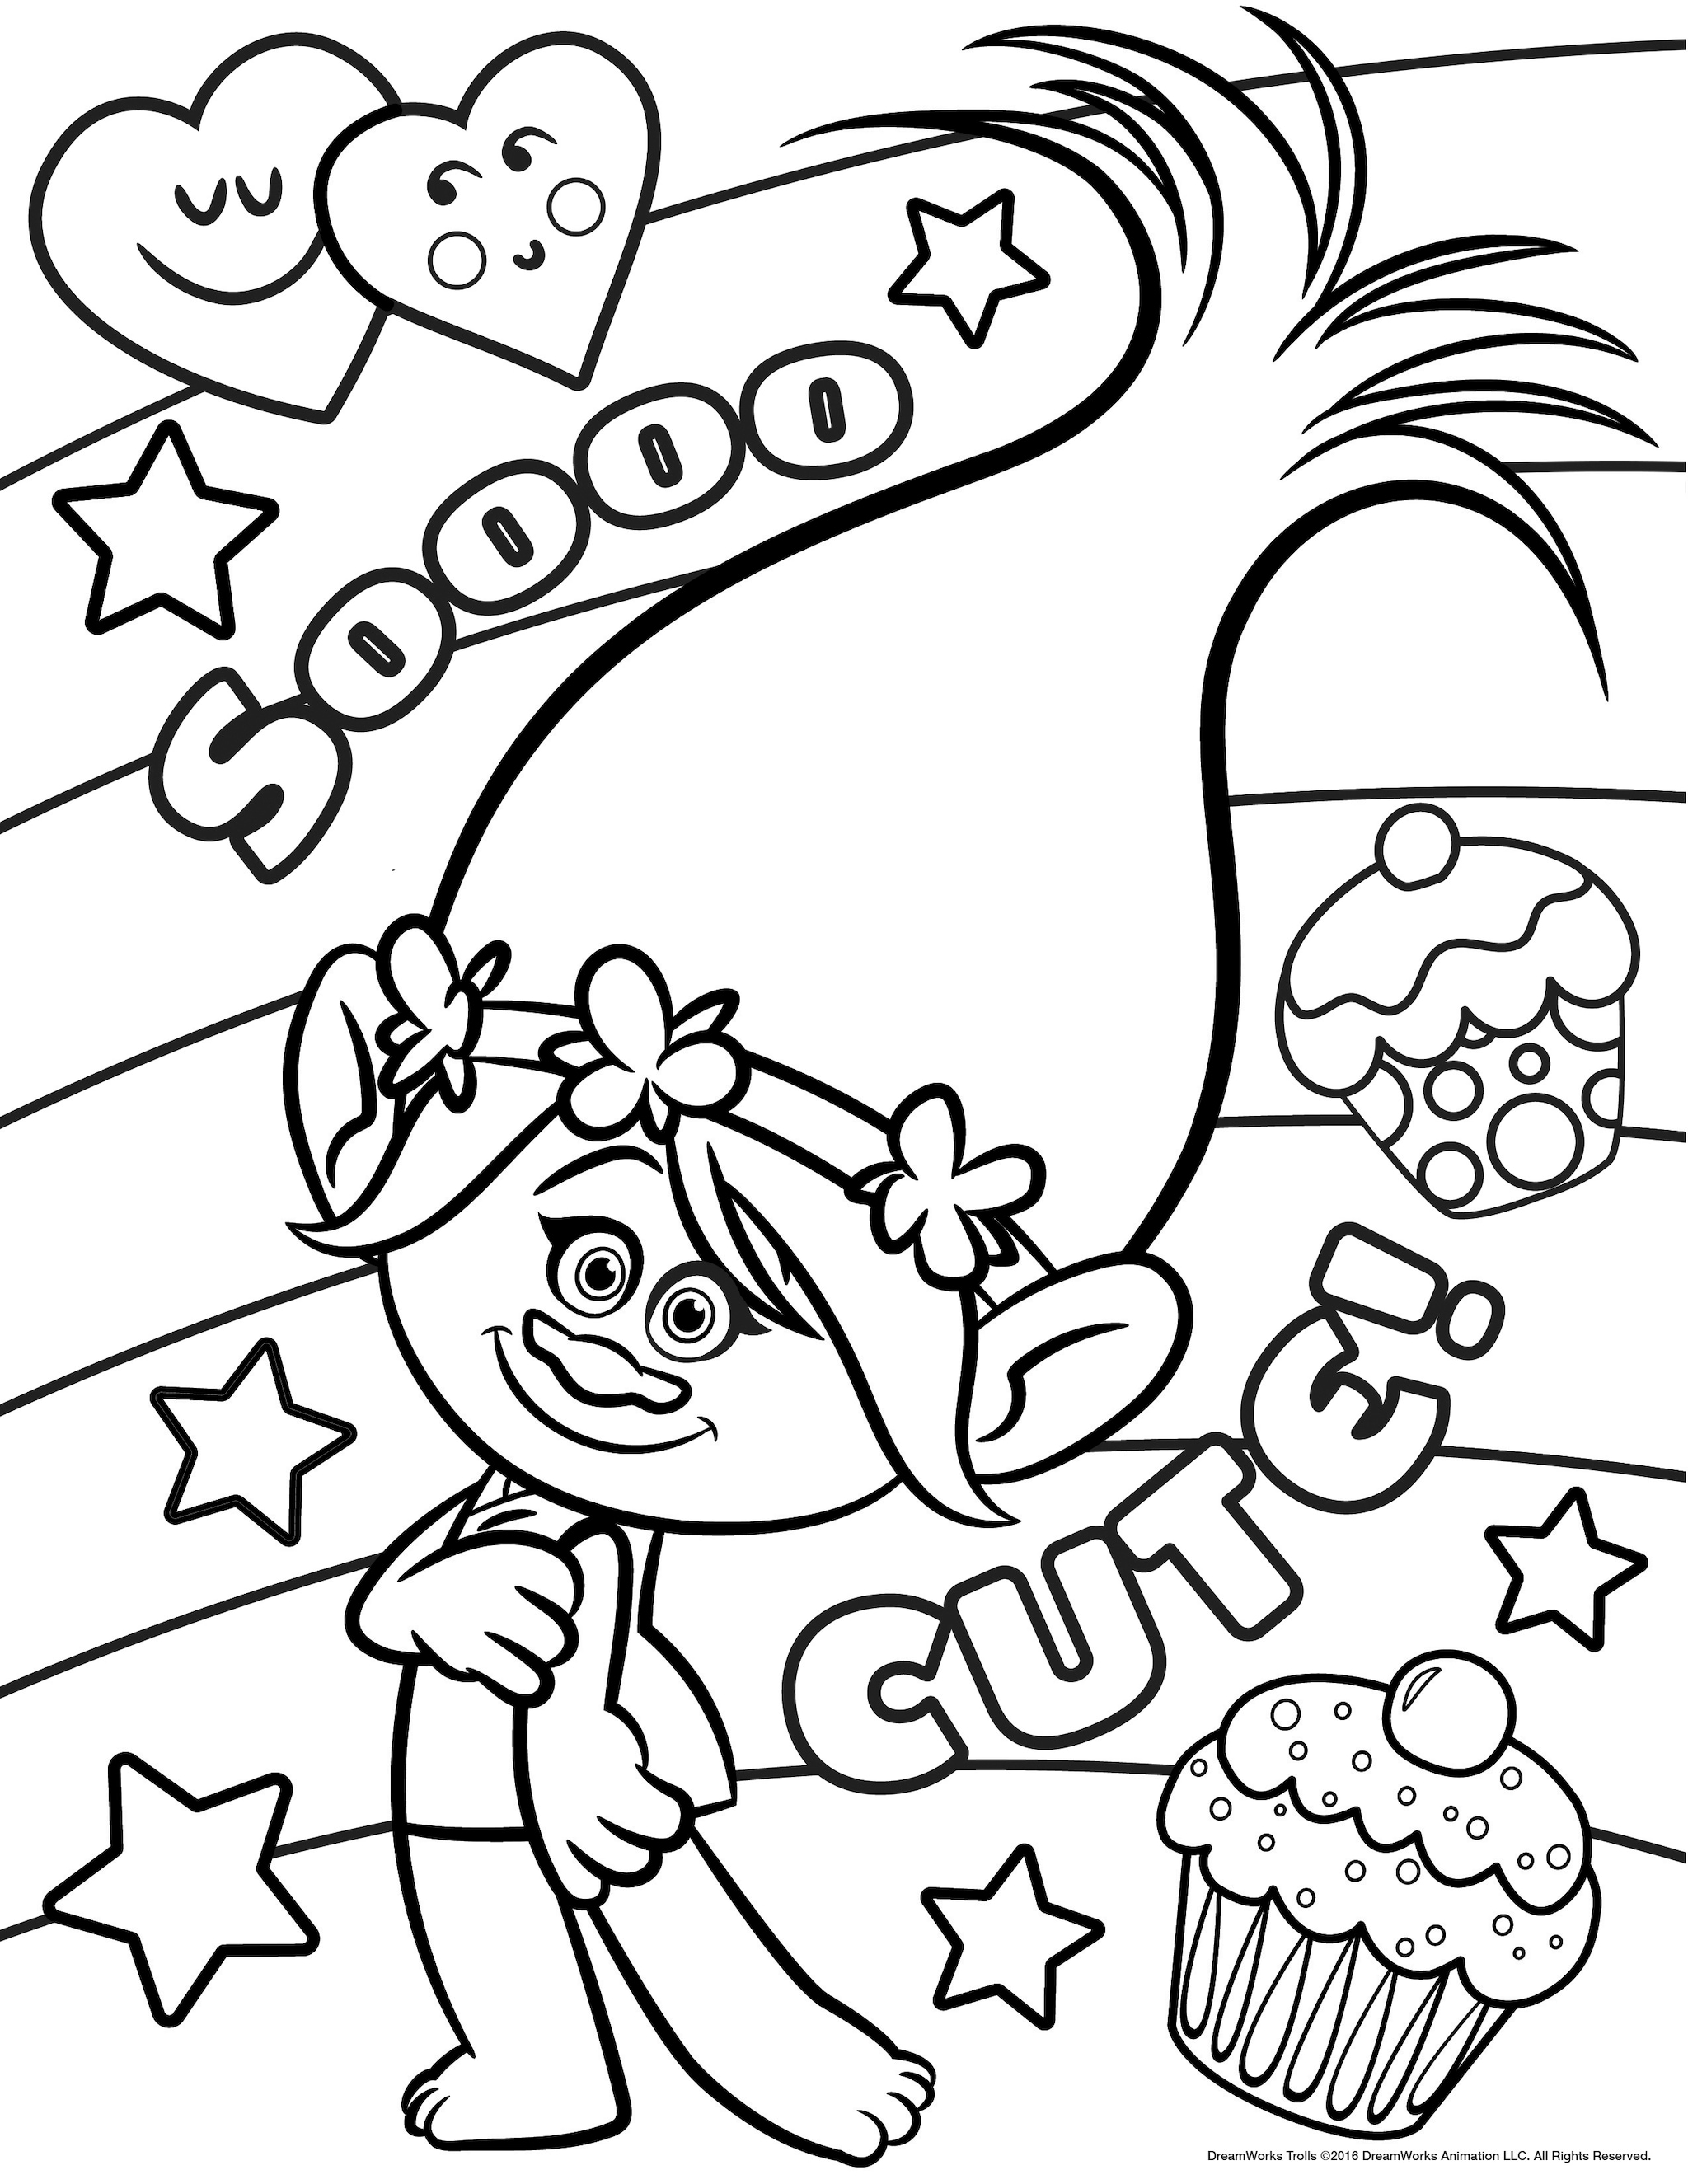 This is a graphic of Old Fashioned Troll Coloring Pages To Print